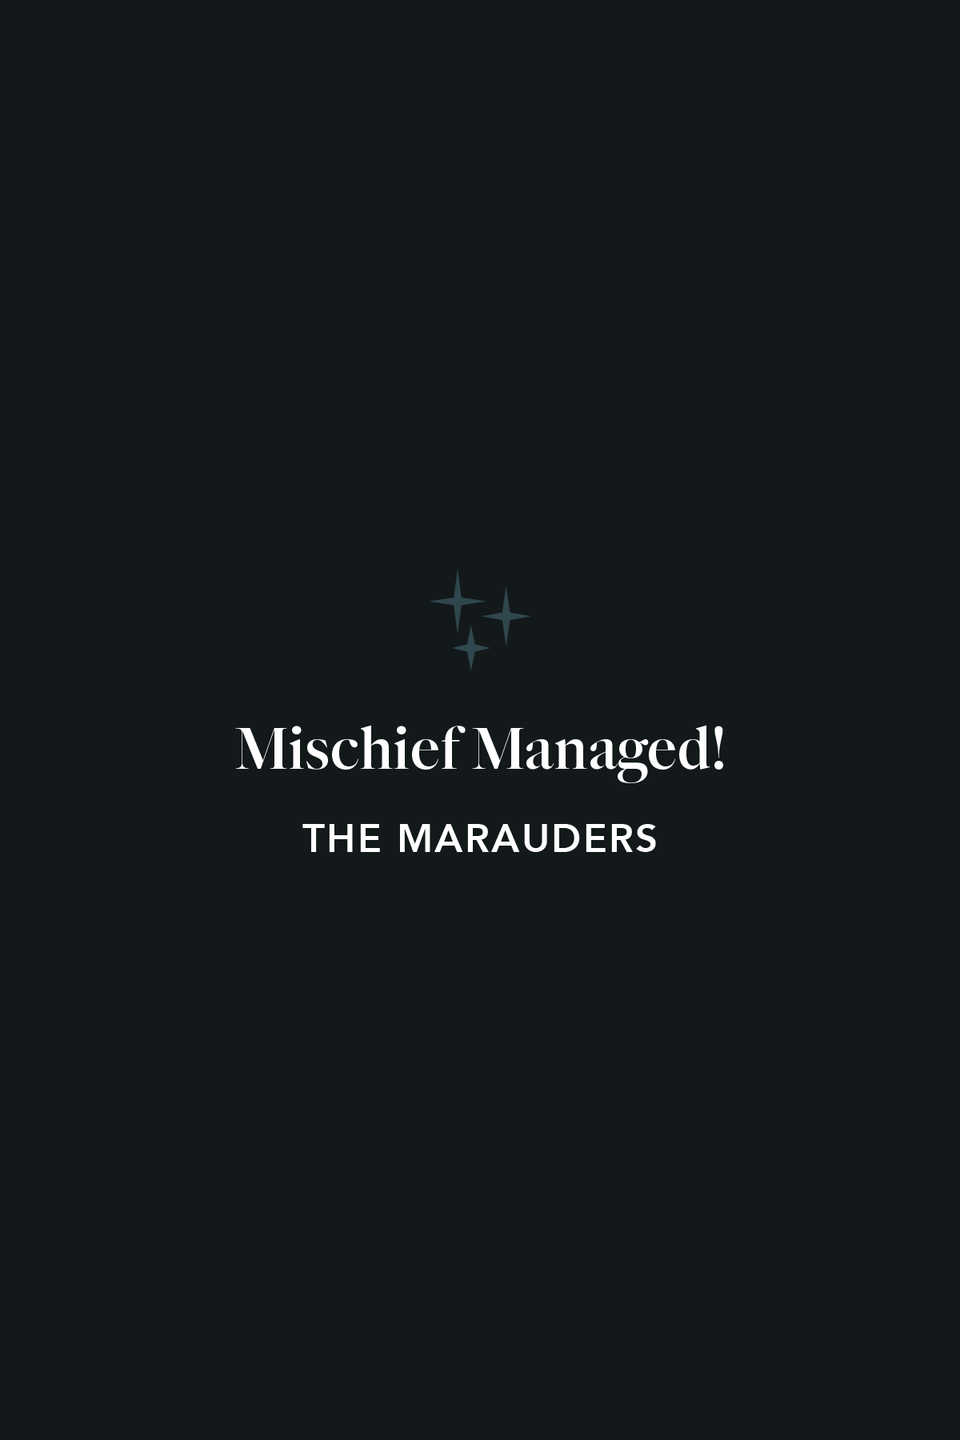 """<p>In <em>The Prisoner of Azkaban, </em>we learn that The Marauders invented the magical phrase, """"Mischief managed!"""" to deactivate their Marauder's Map.</p>"""